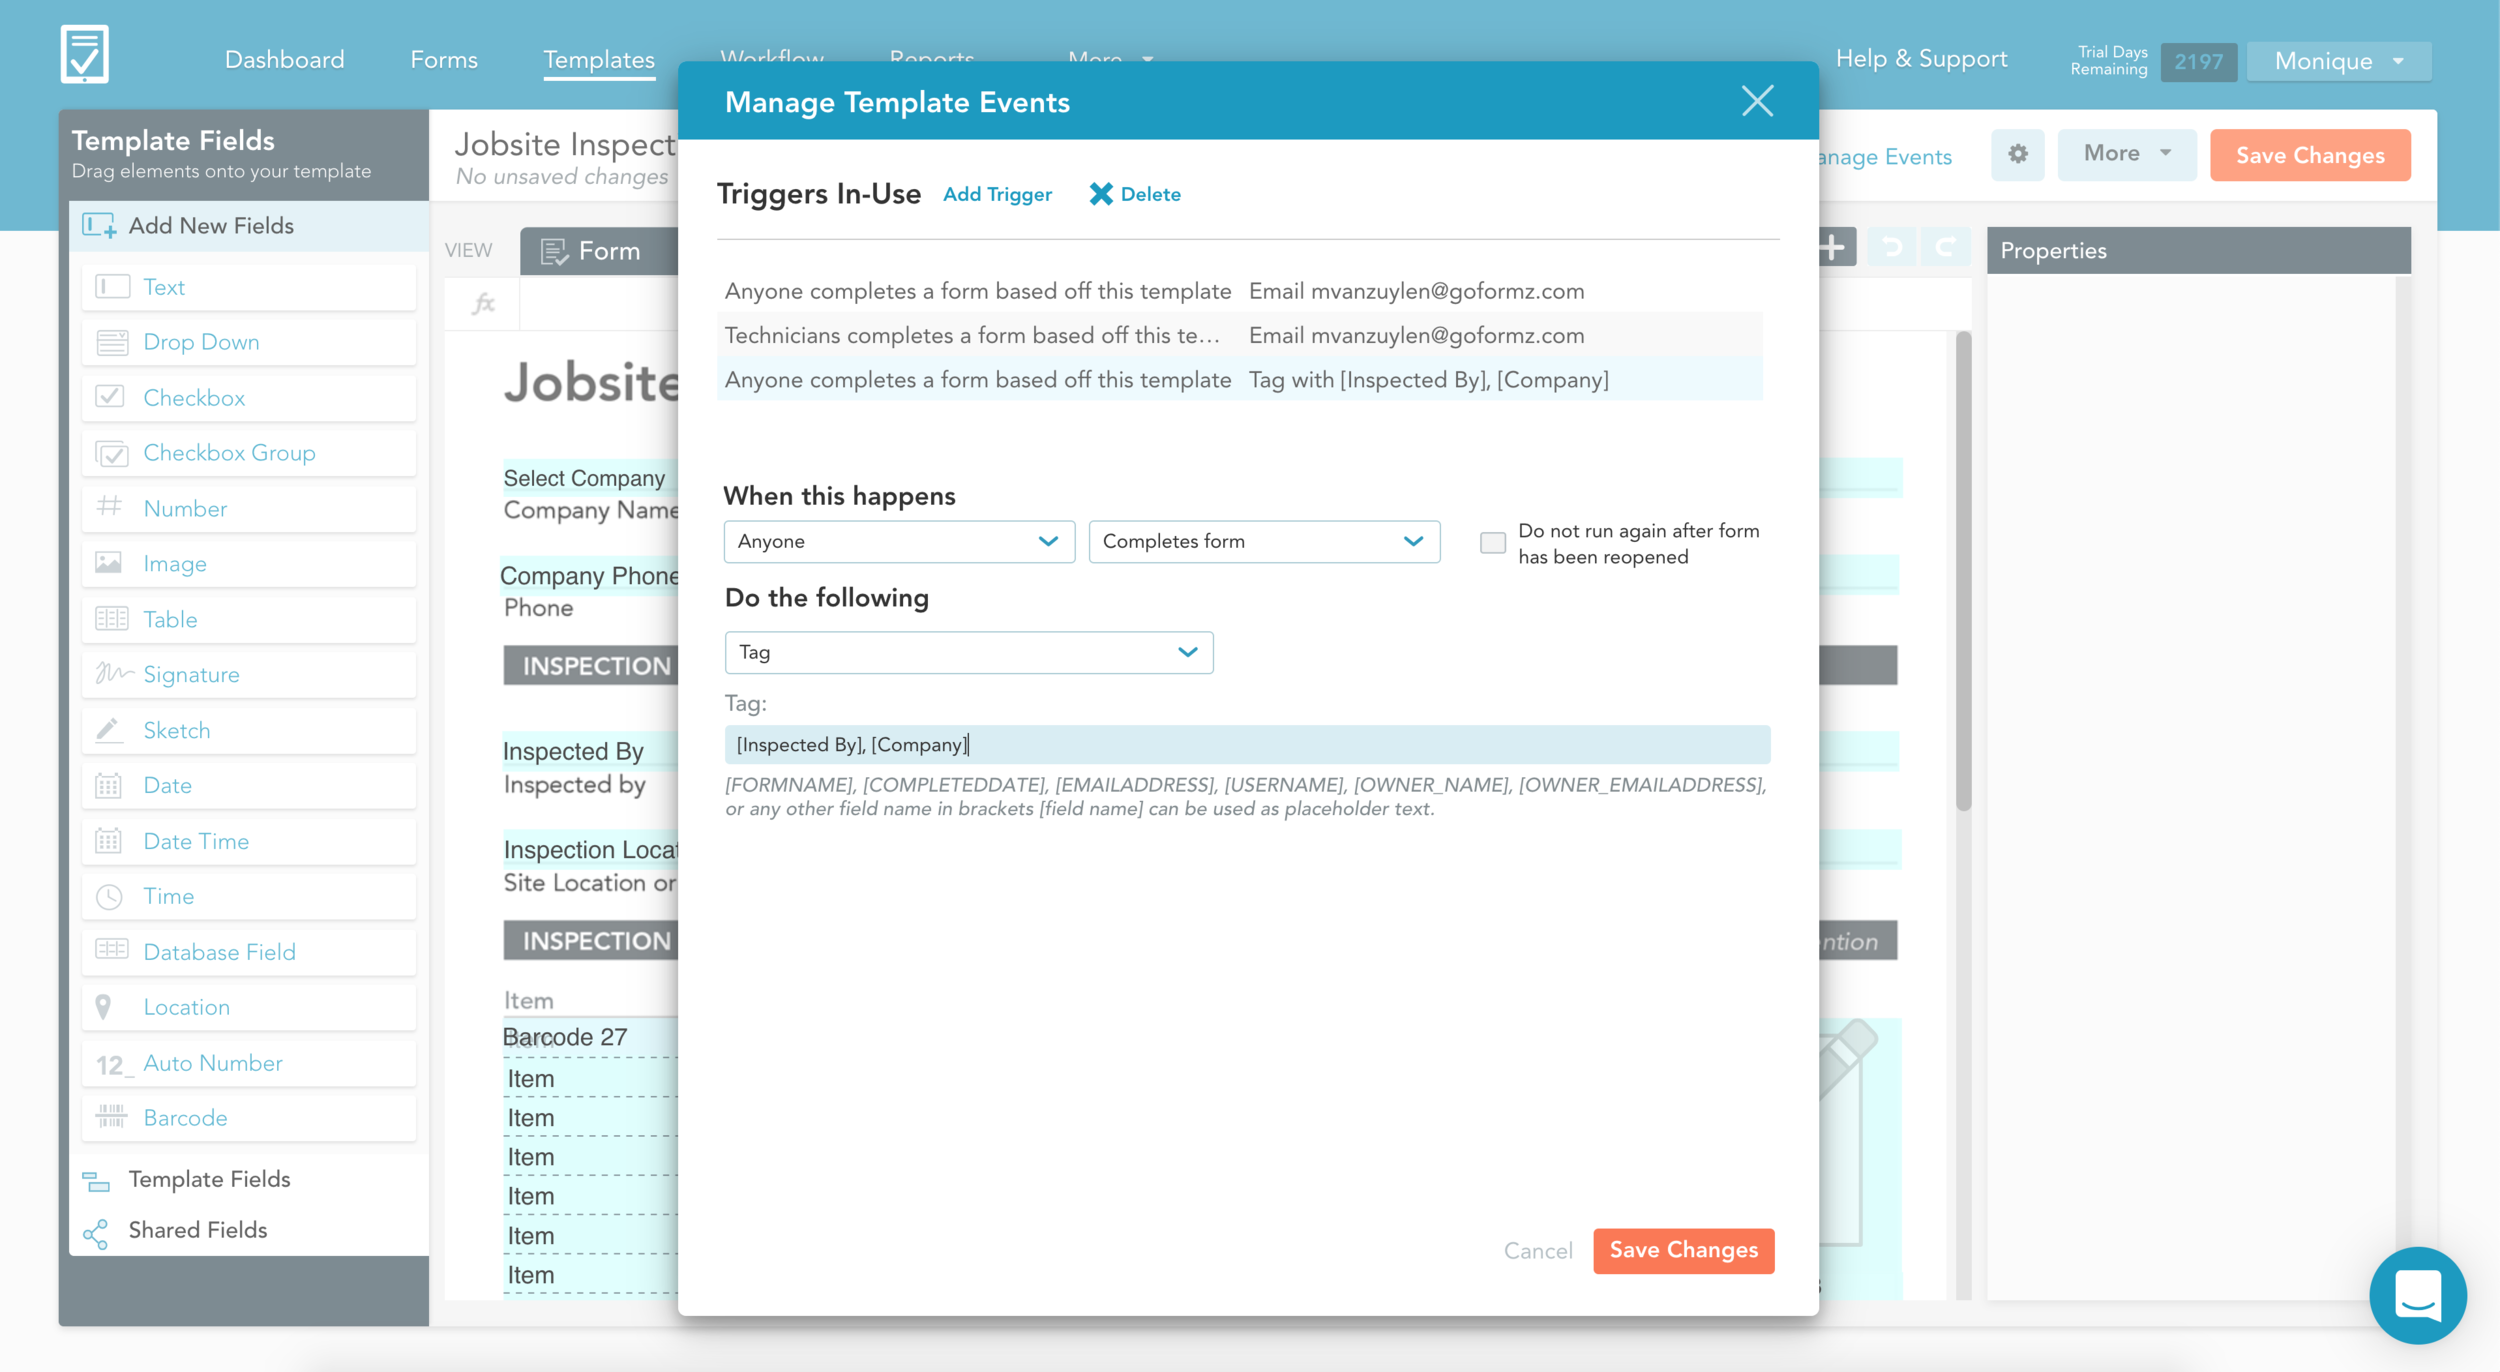 Add Automatic Form Tagging in the Manage Events Window of the Template Editor